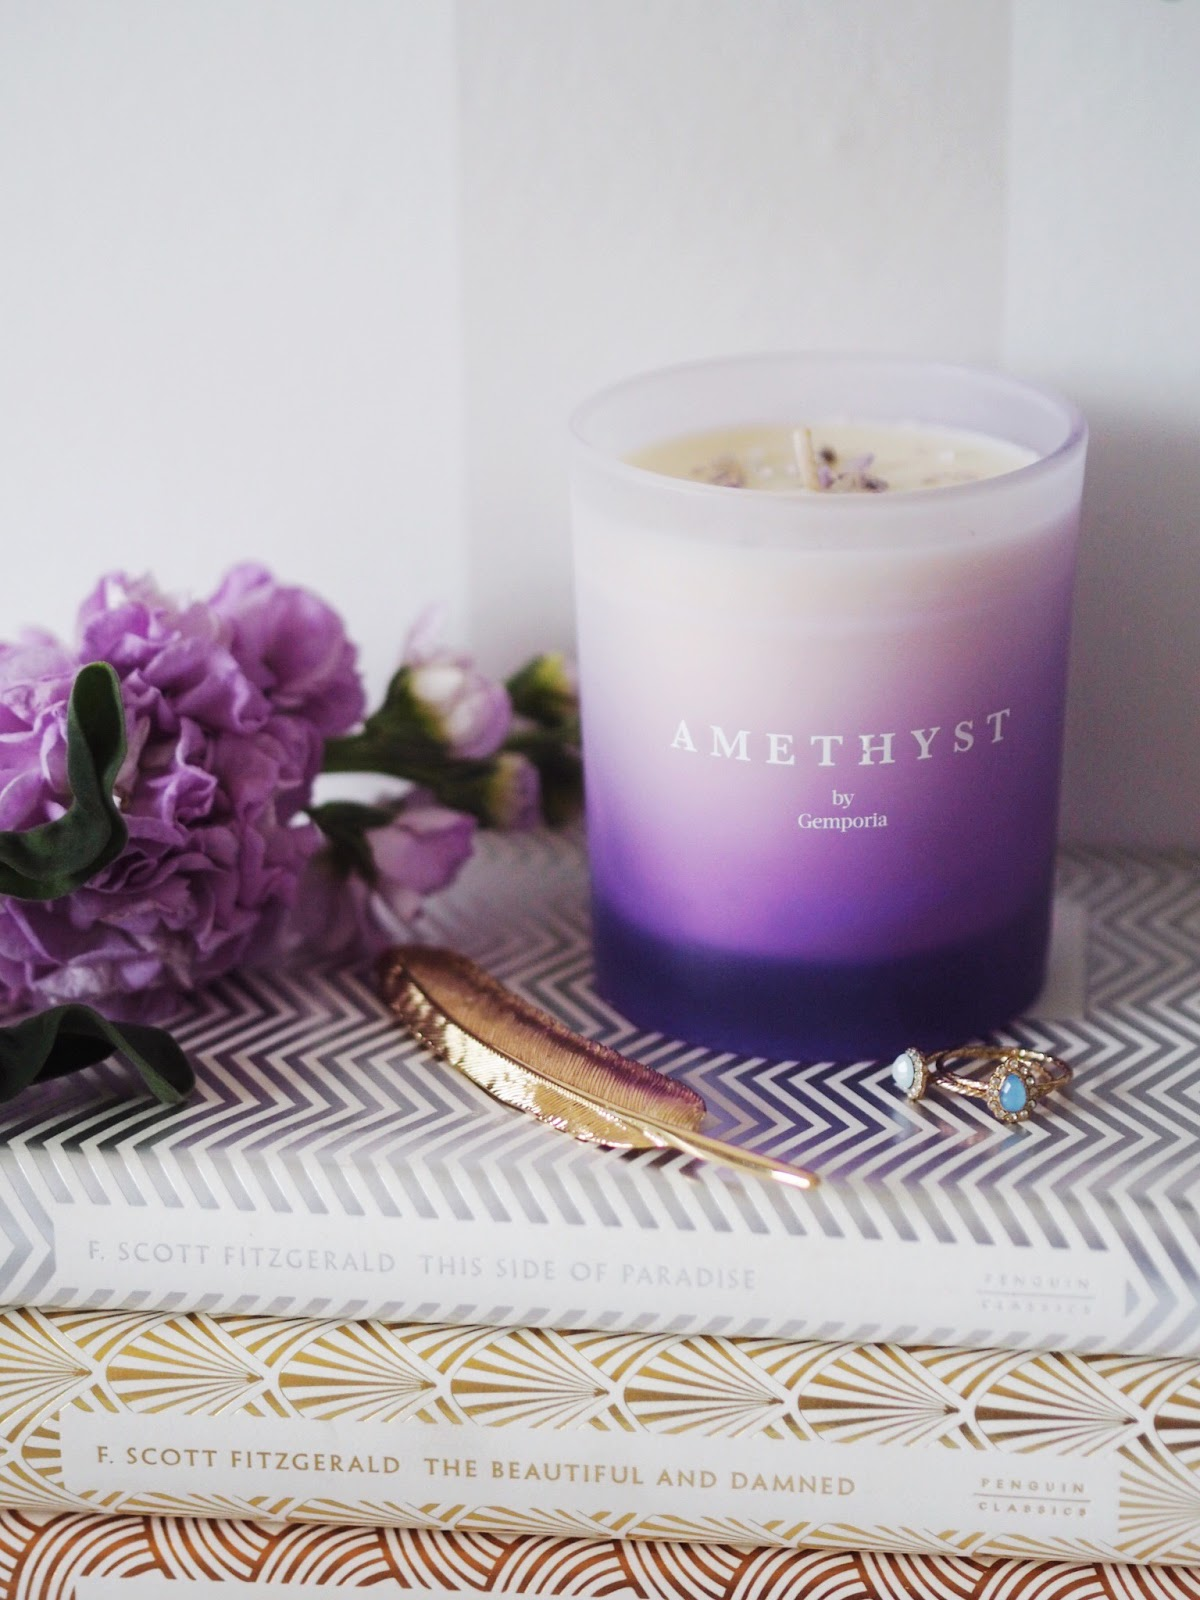 Gemporia Birthstone Candle February Lilac Stocks and Jewellery on some special edition Fitzgerald Books